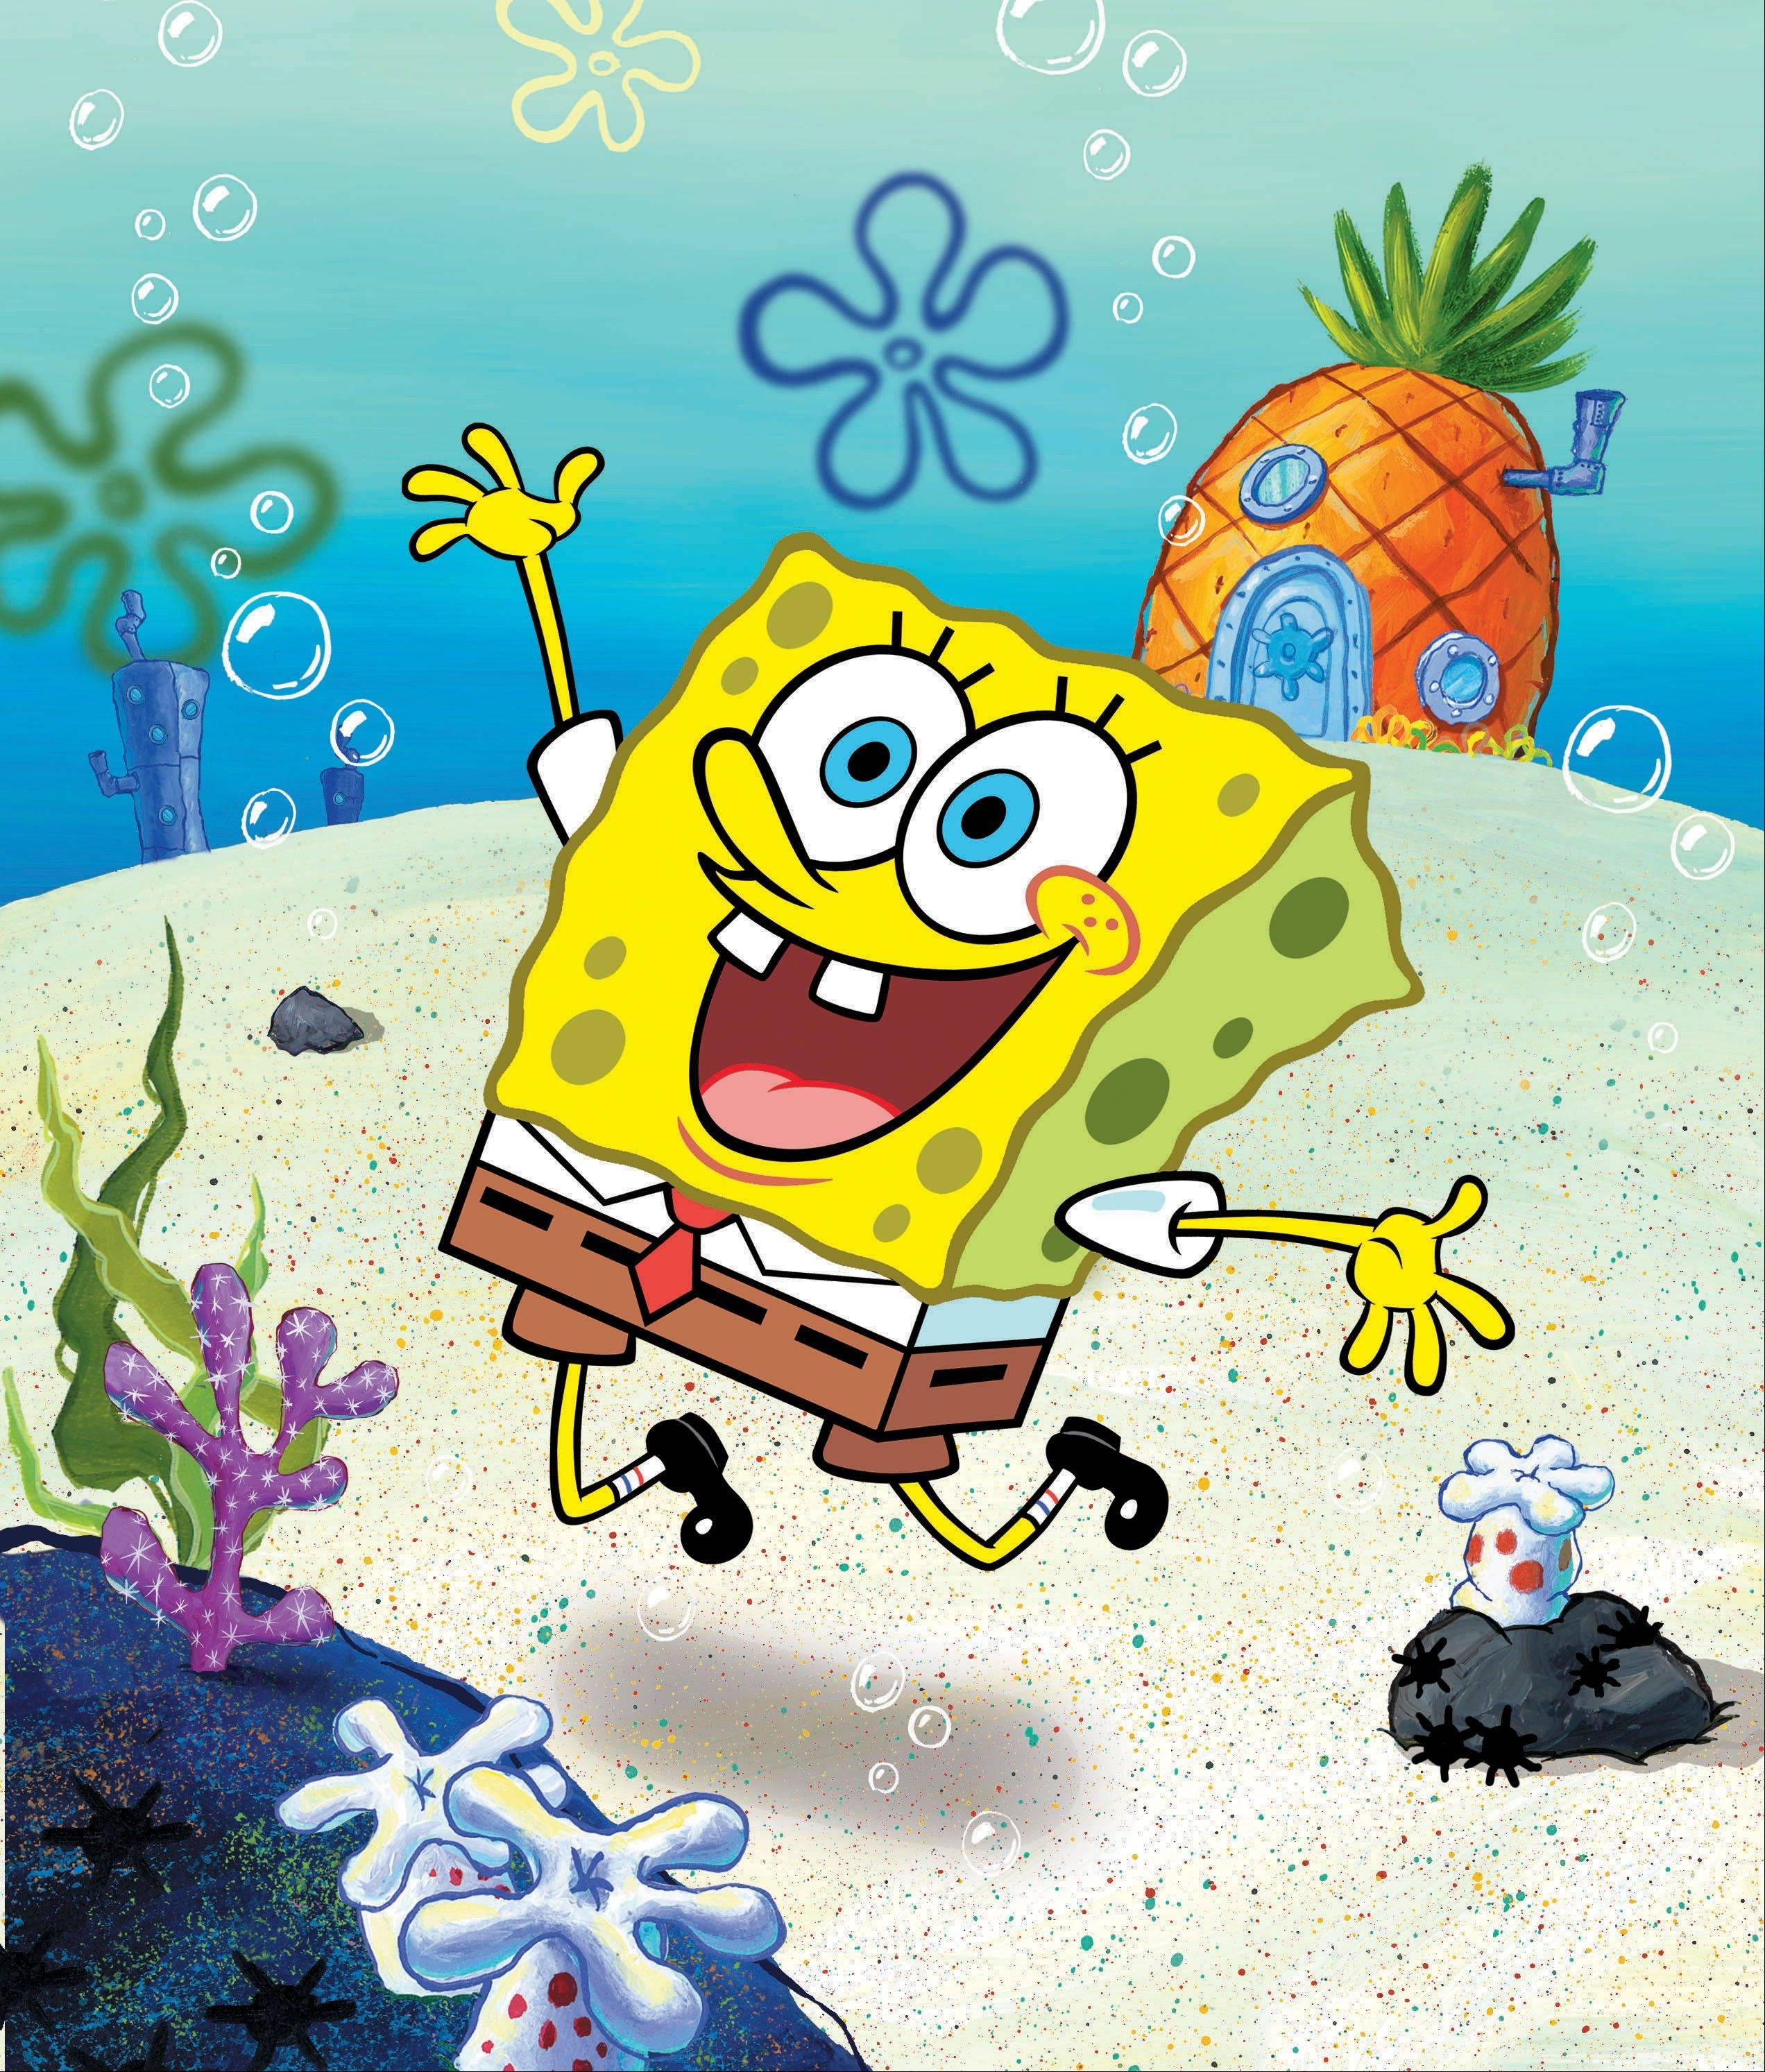 """SpongeBob SquarePants"" is in hot water from a study suggesting that watching just nine minutes of ""SpongeBob SquarePants"" can cause short-term attention and learning problems in 4-year-olds."